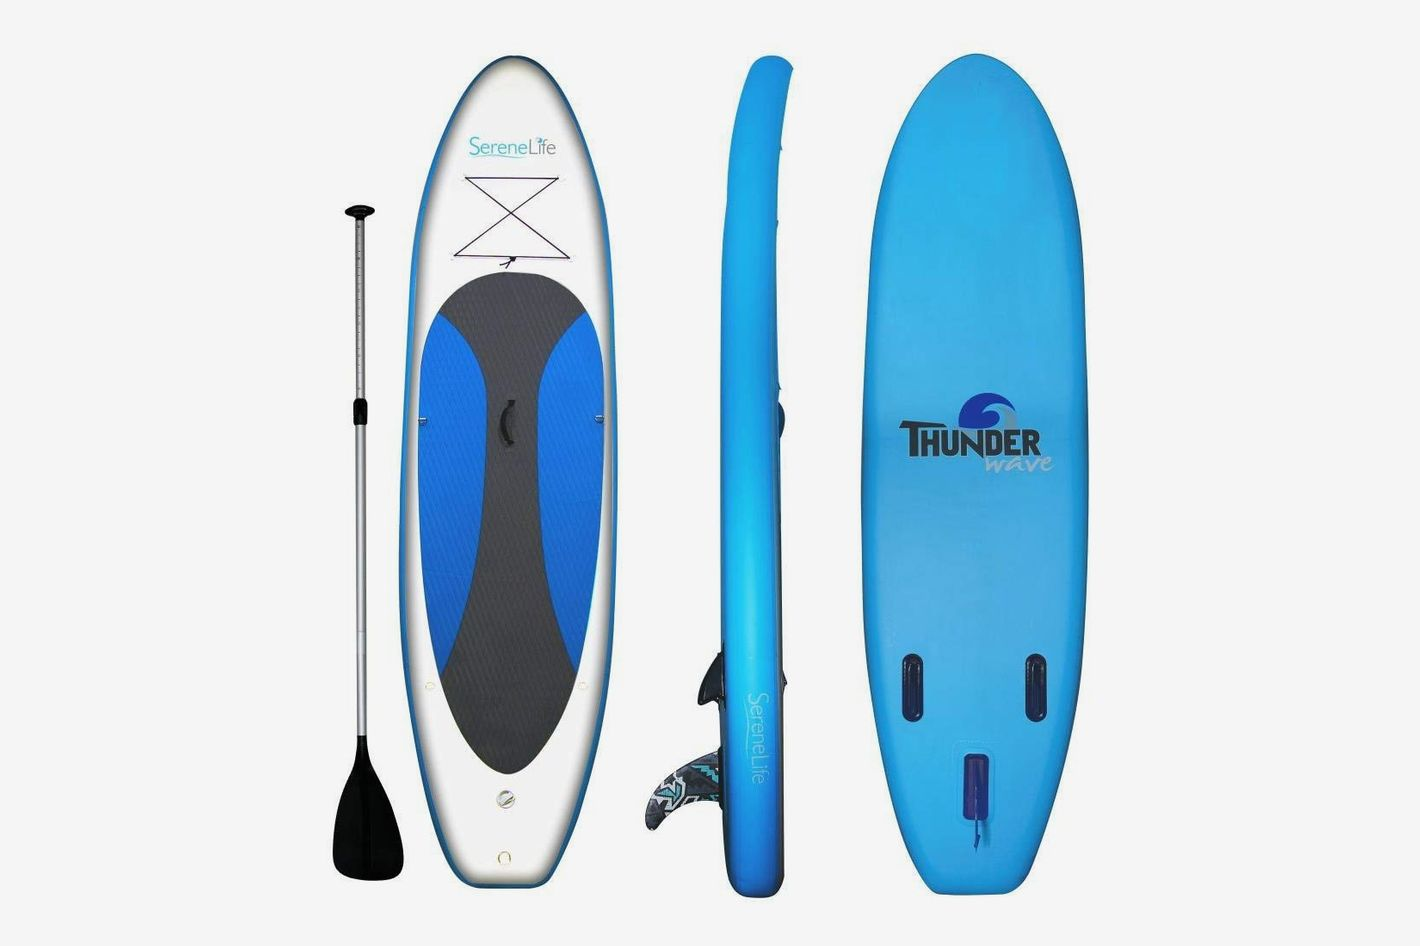 SereneLife Inflatable Stand Up Paddle Board (6 Inches Thick) with Premium SUP Accessories & Carry Bag